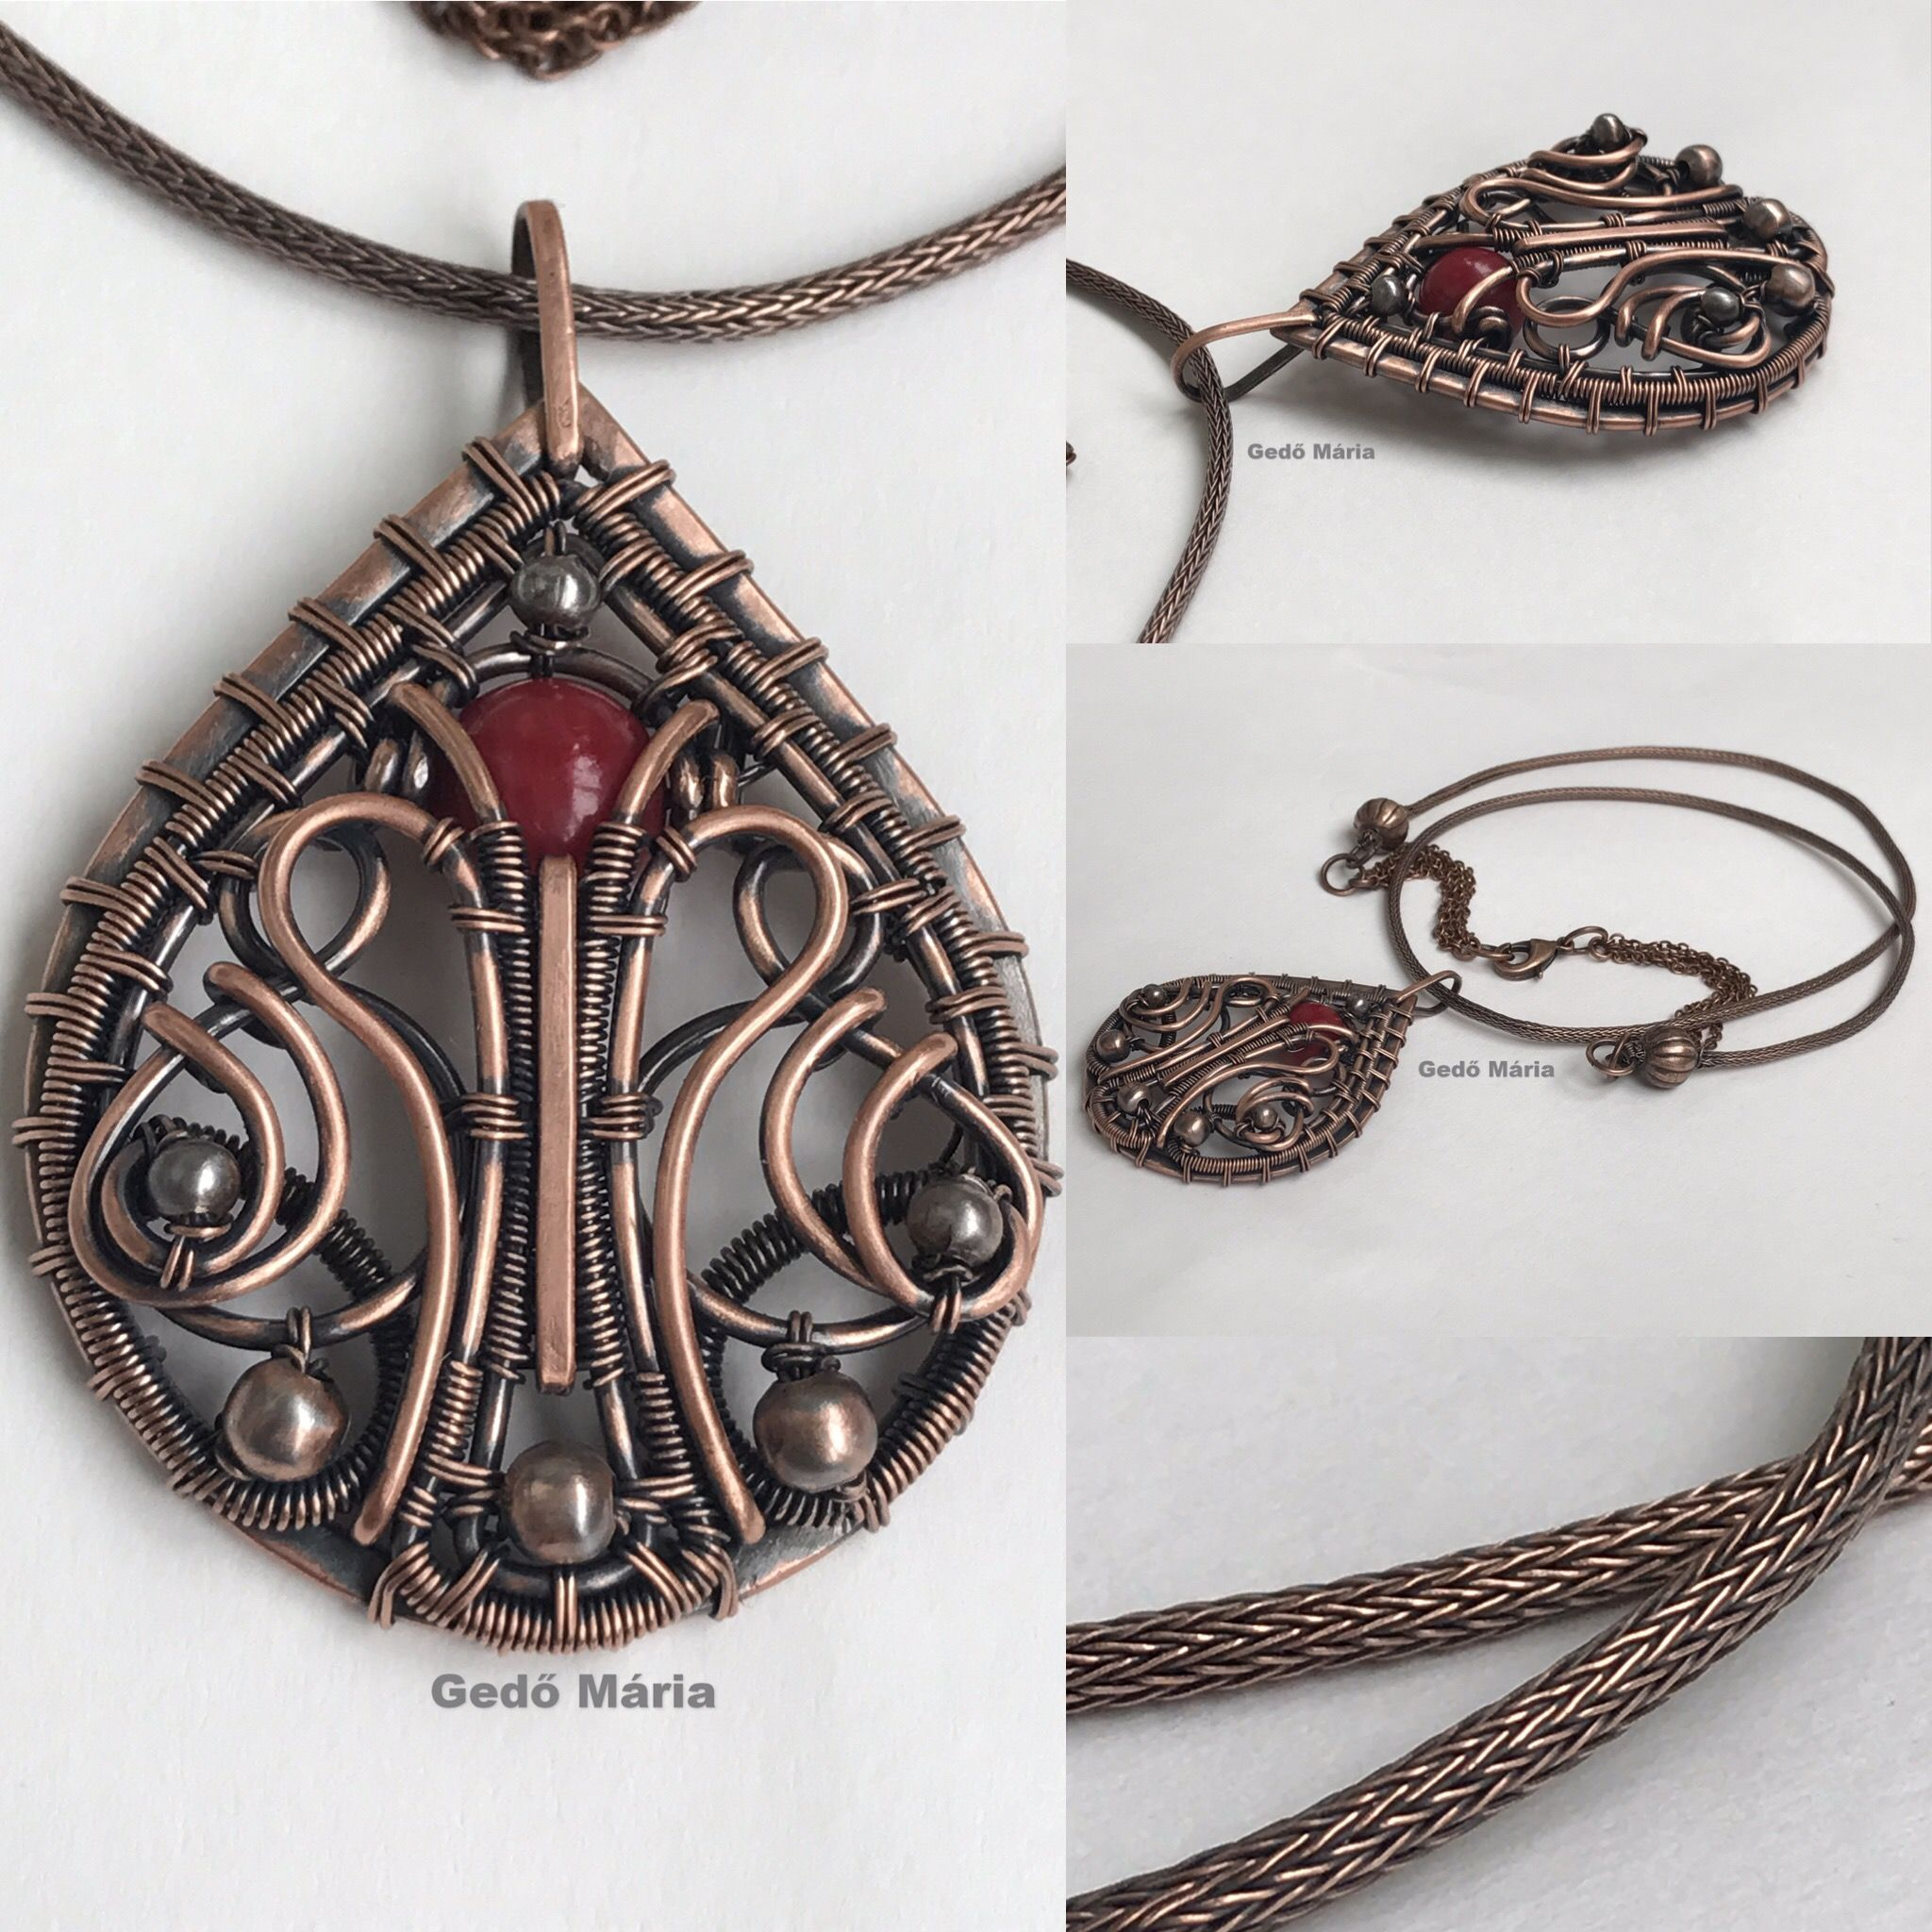 Pin by Gedő Mária on My own work | Pinterest | Wire wrapping, Wraps ...